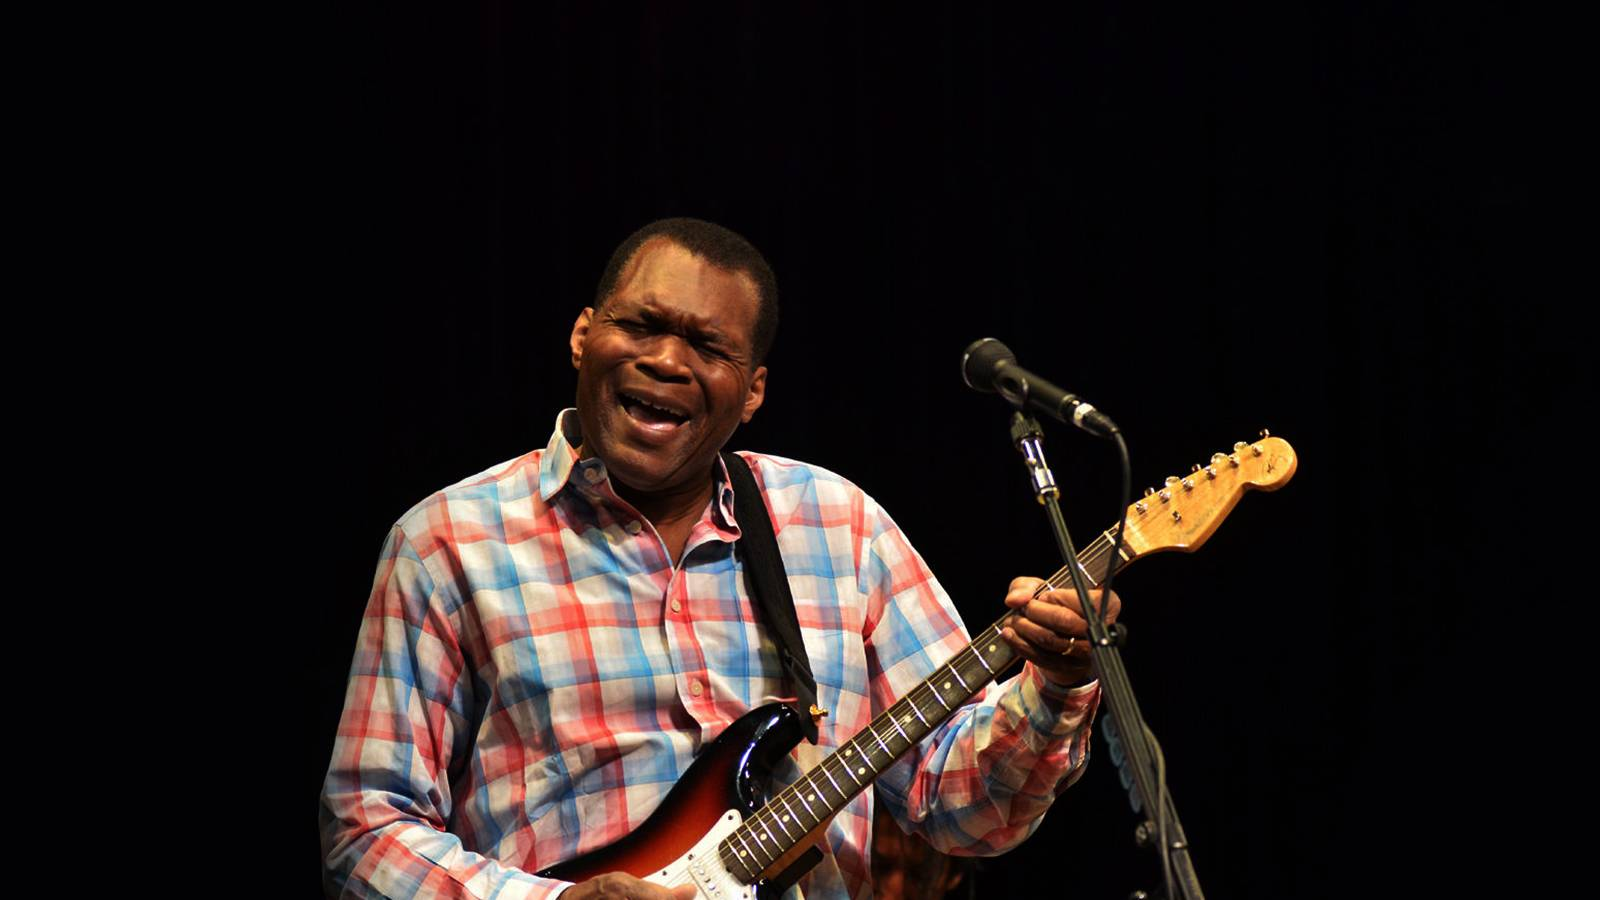 Robert Cray (Rescheduled from 3/15/2020, 9/9/2020)